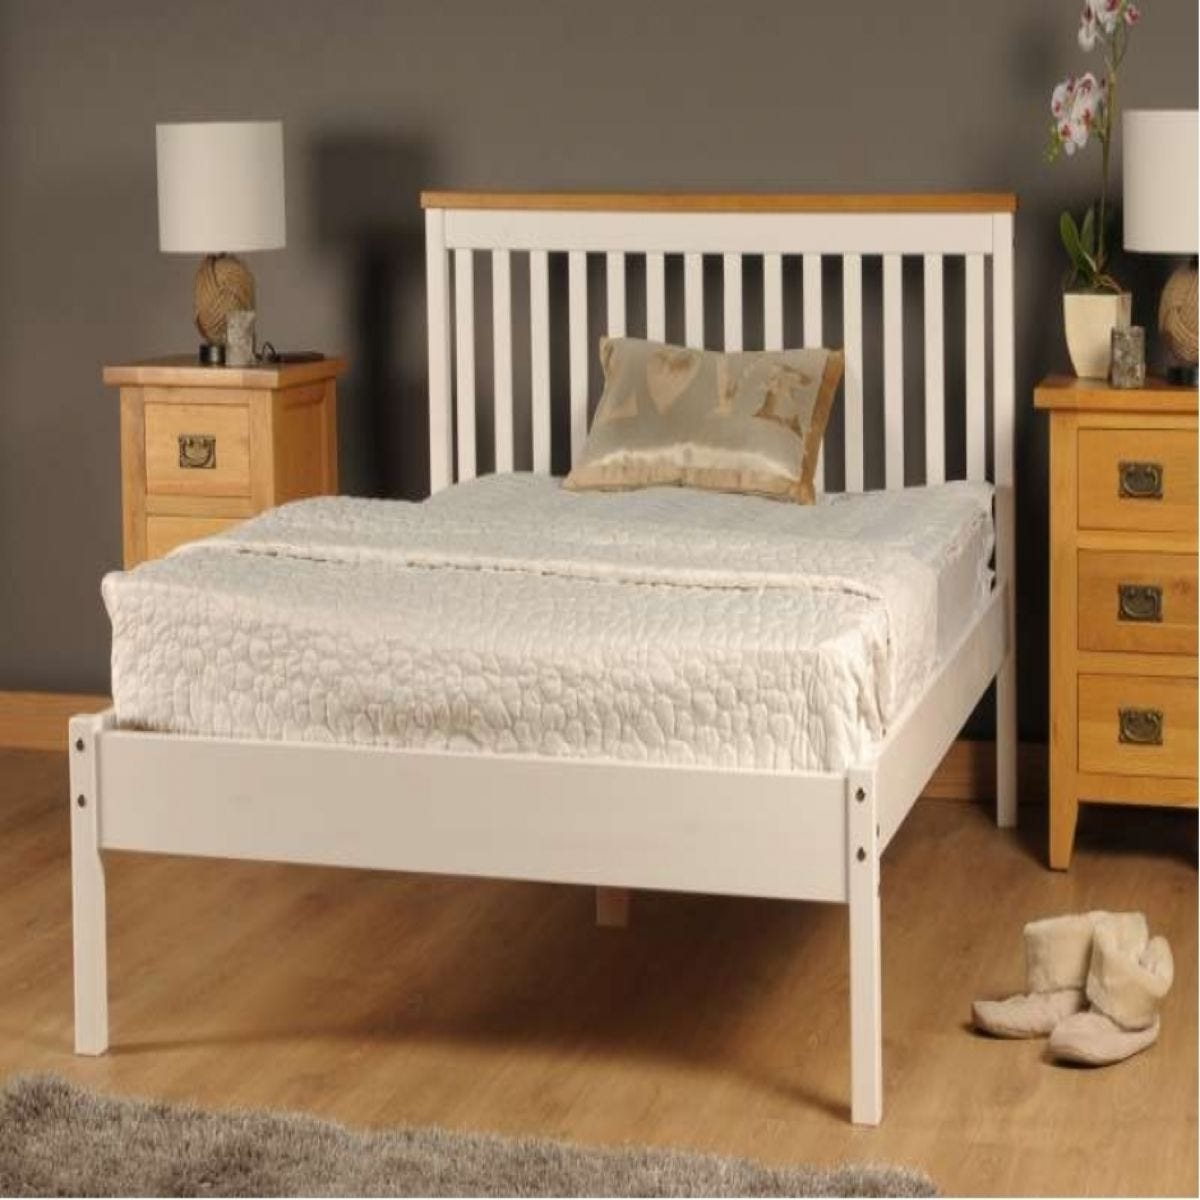 Riga Bed Frame - White